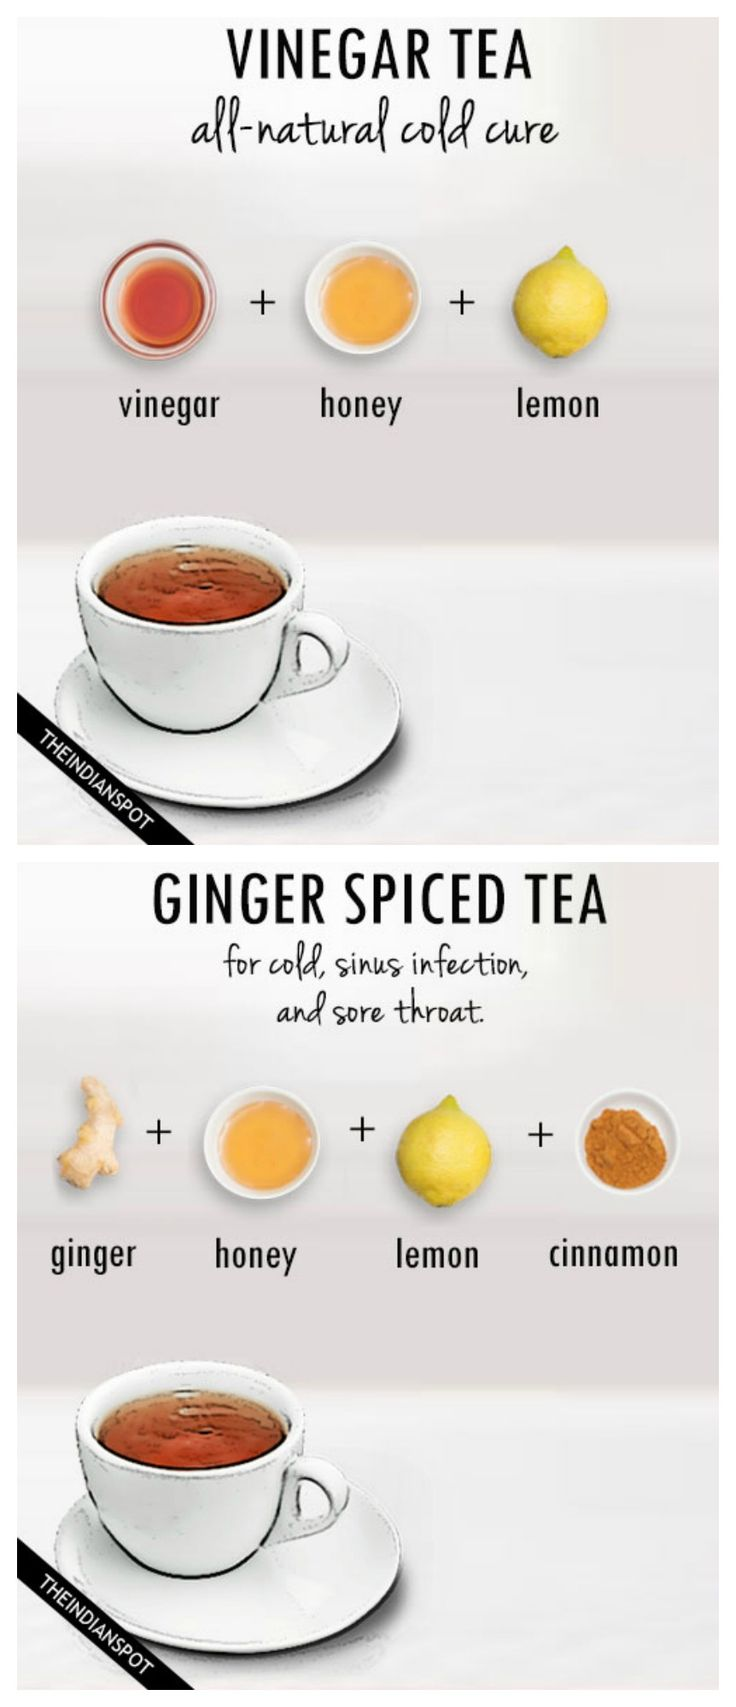 tea recipes for cough, cold, flu and sore throat